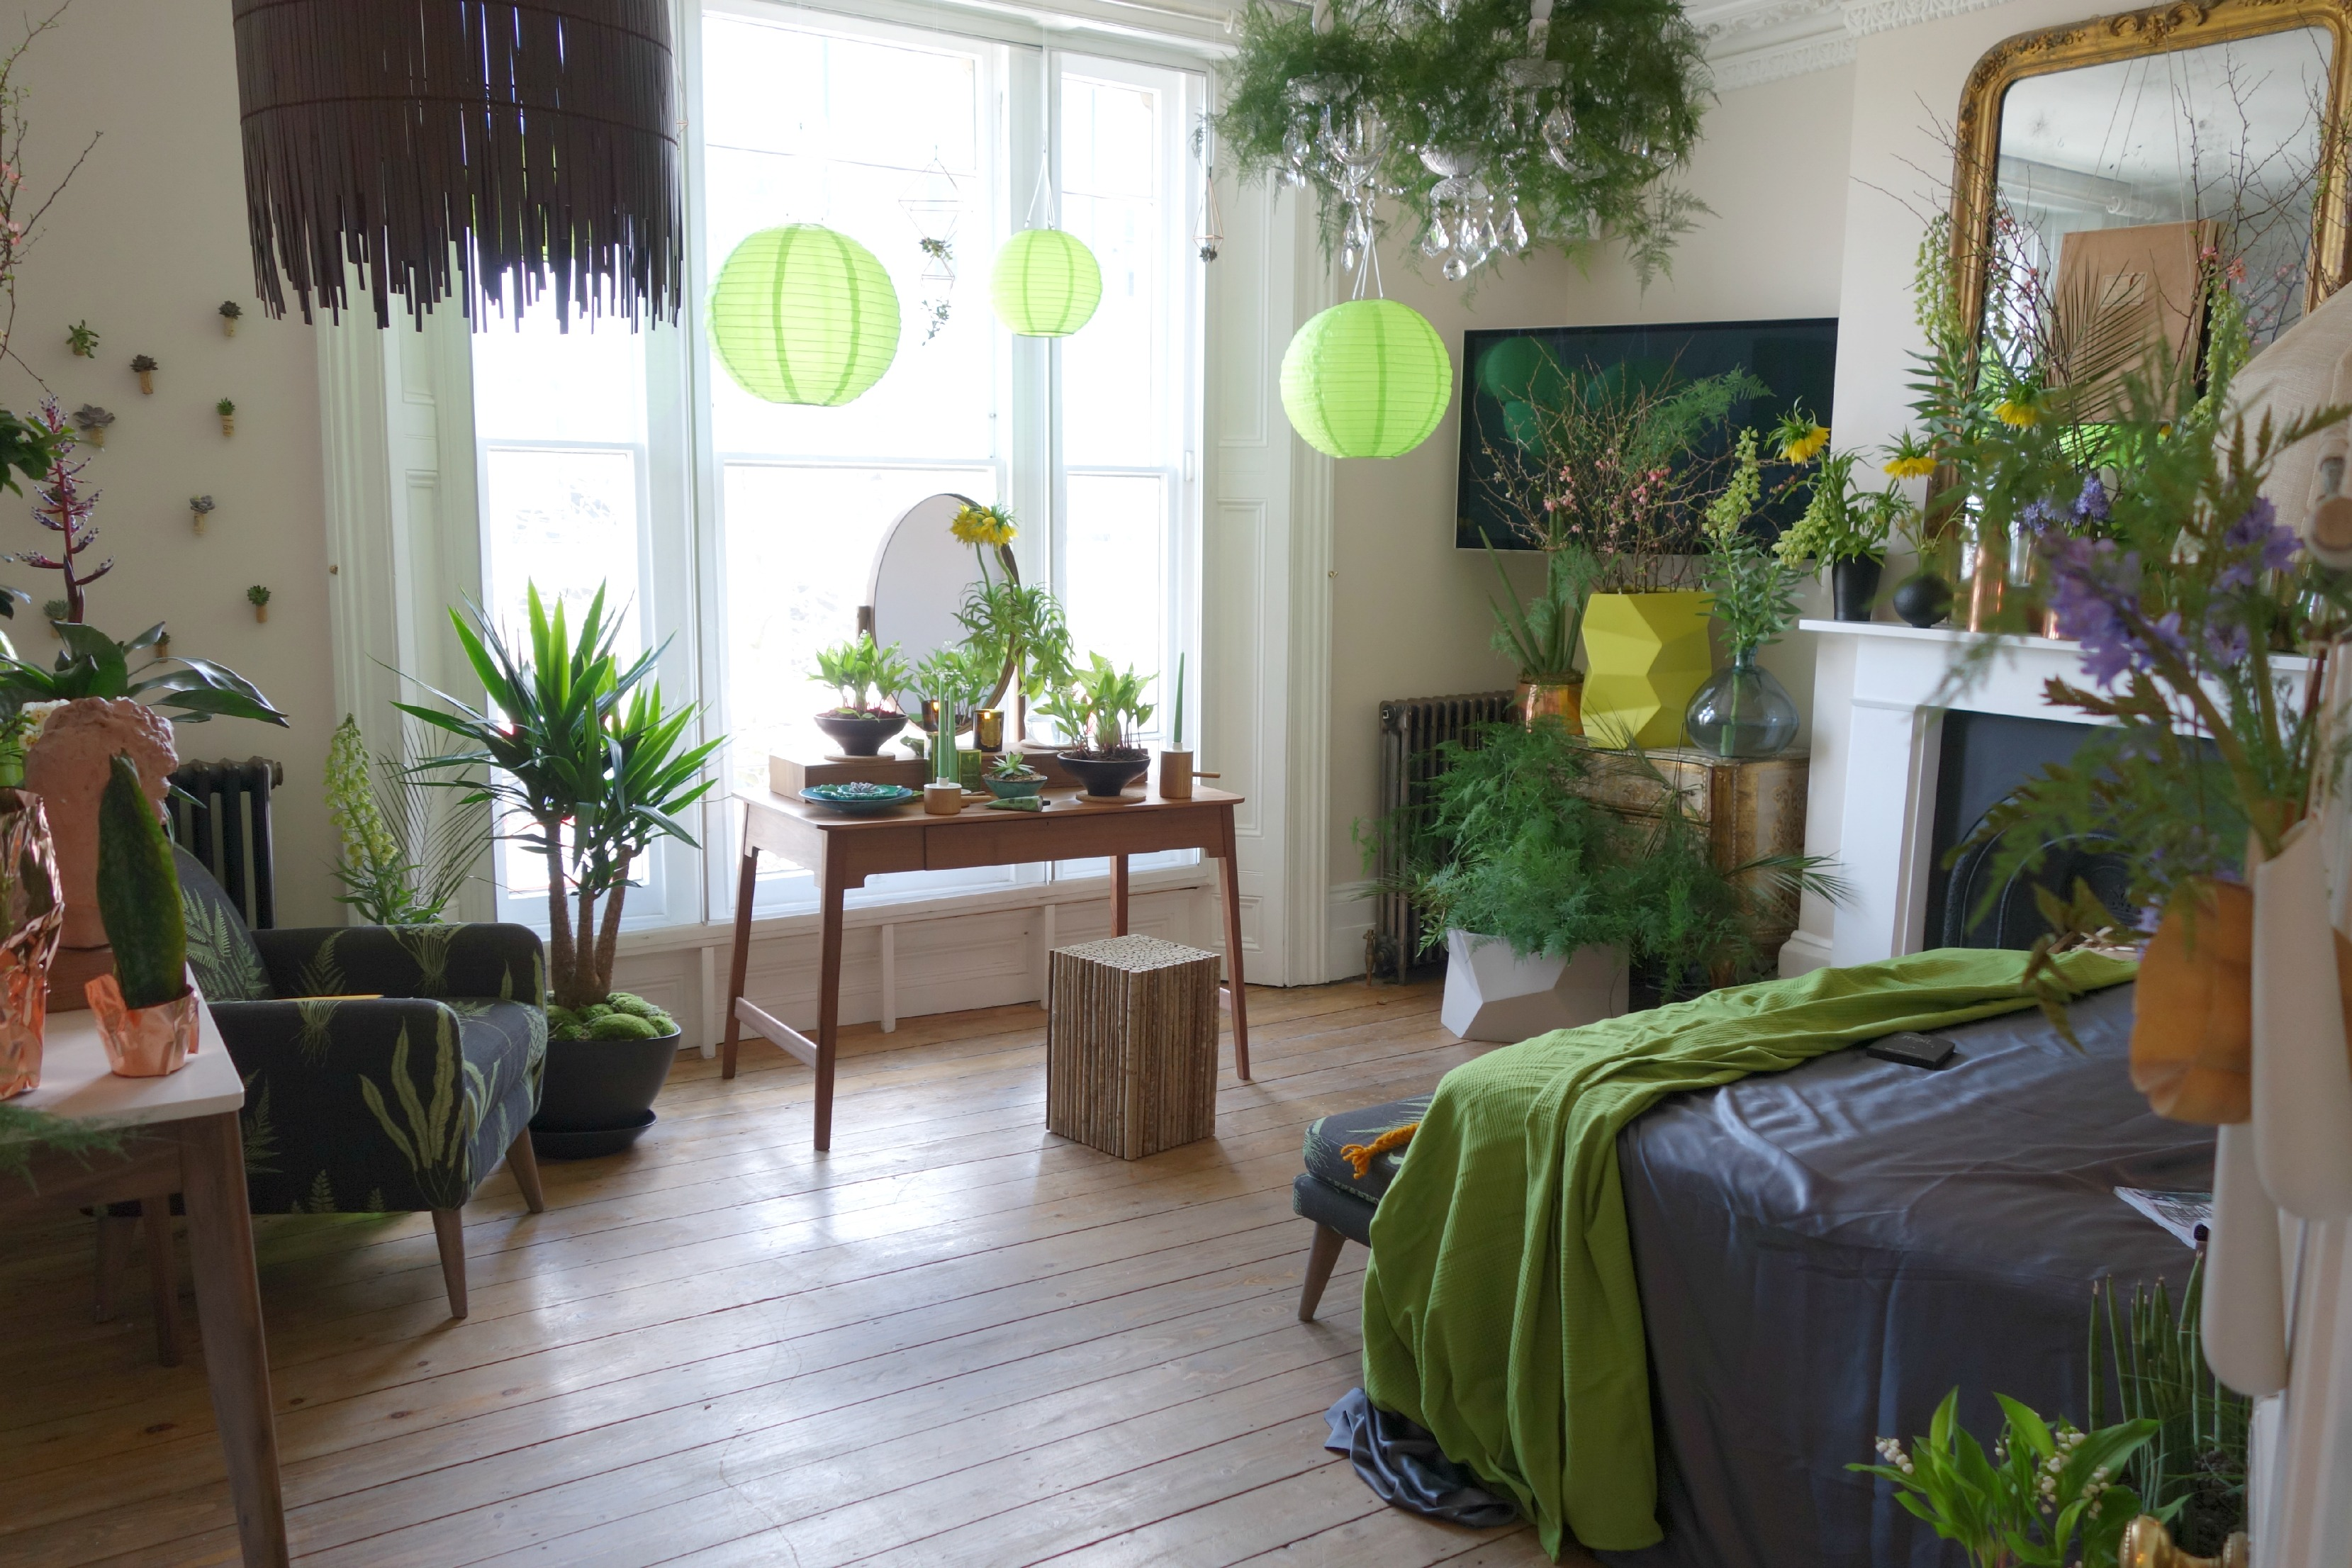 Plant Bed Feng Shui Tip No Plants In Your Bedroom The Goldylocks Zone